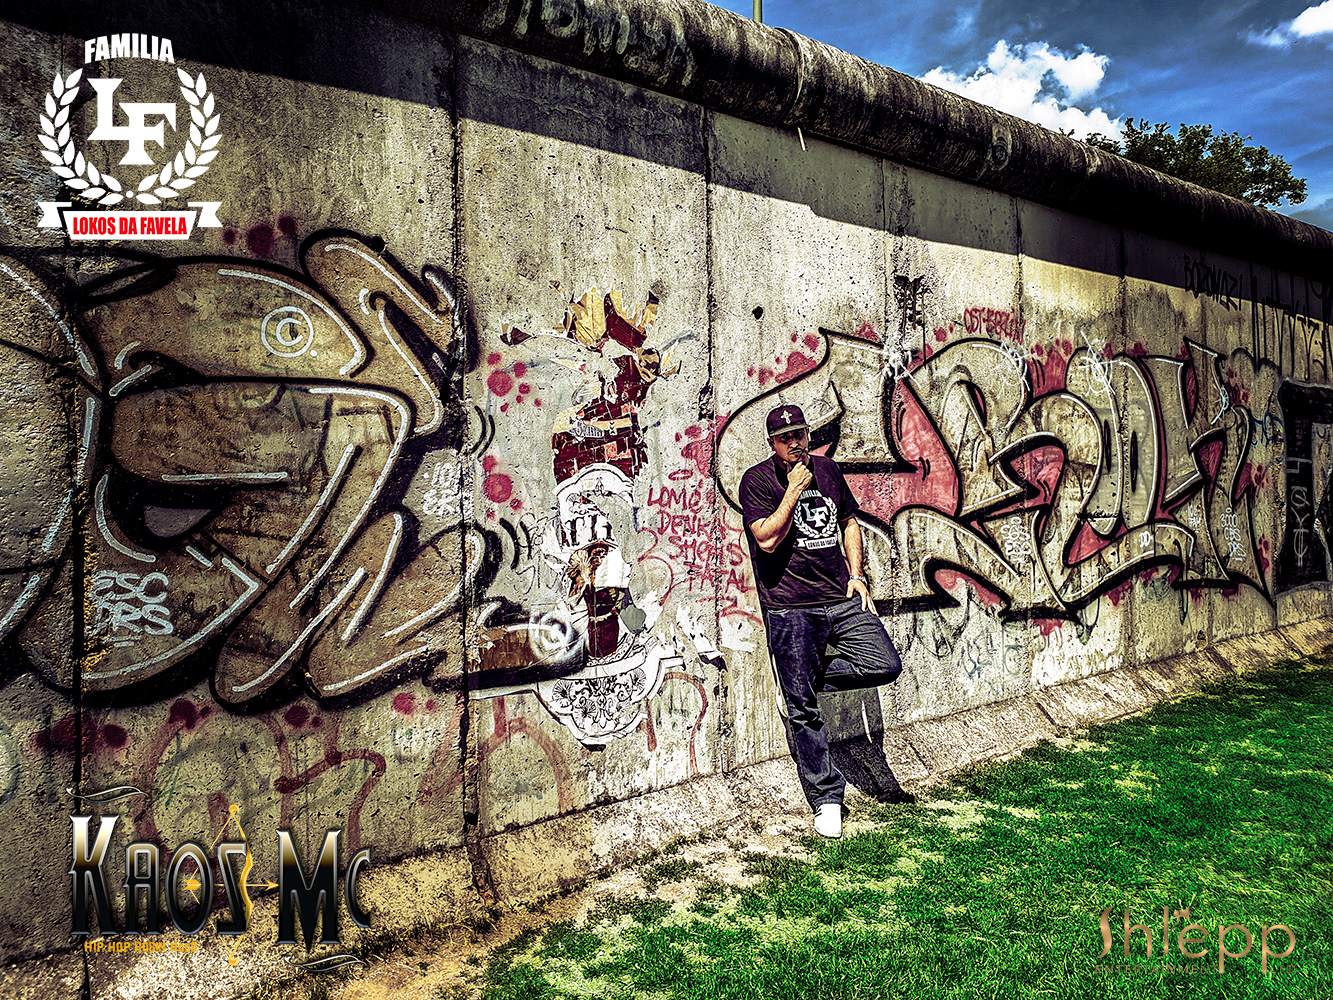 Kaos Mc at the Berlin Wall in Germany where he shot footage for one of his videos.